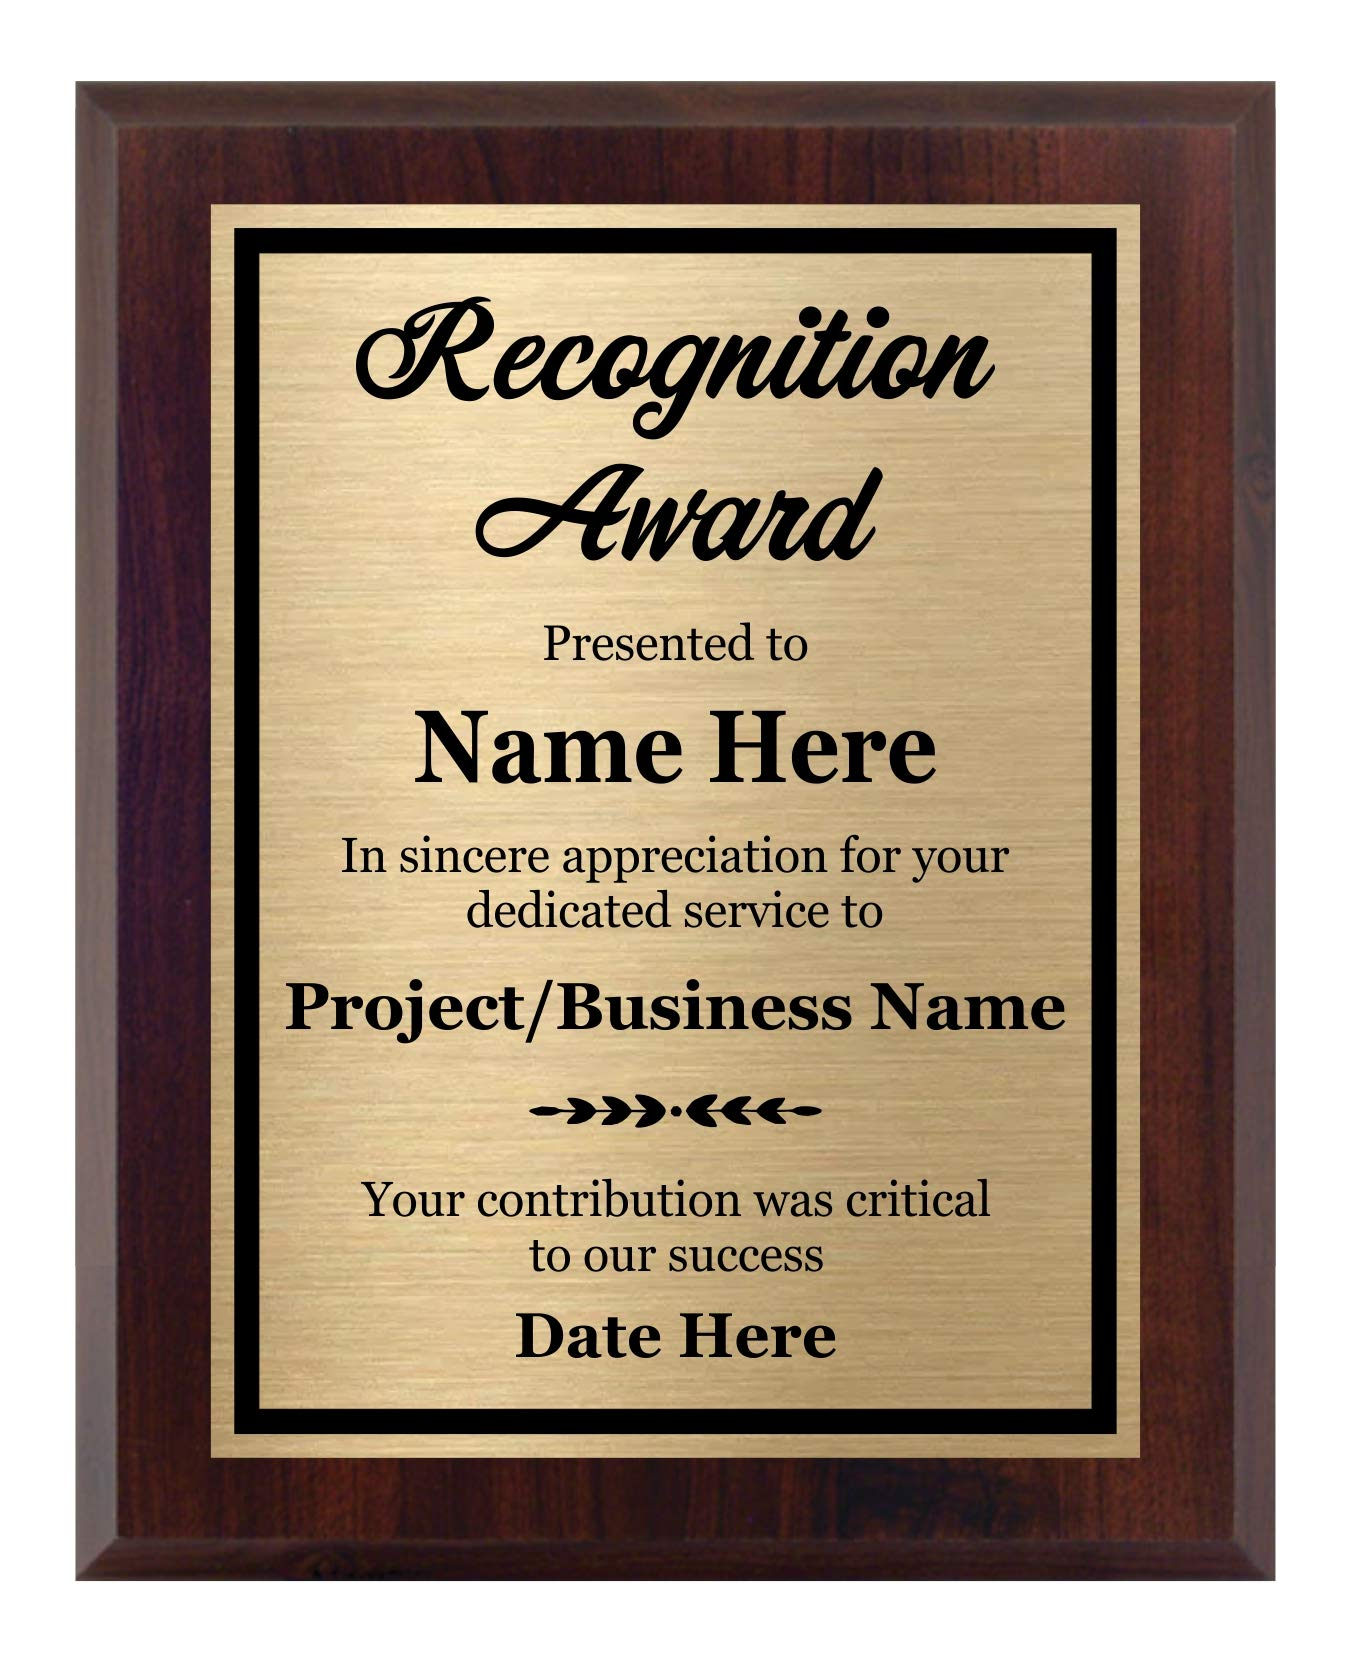 Recognition Plaque 8x10 - Personalized Award, Customize Now! by Awards4U